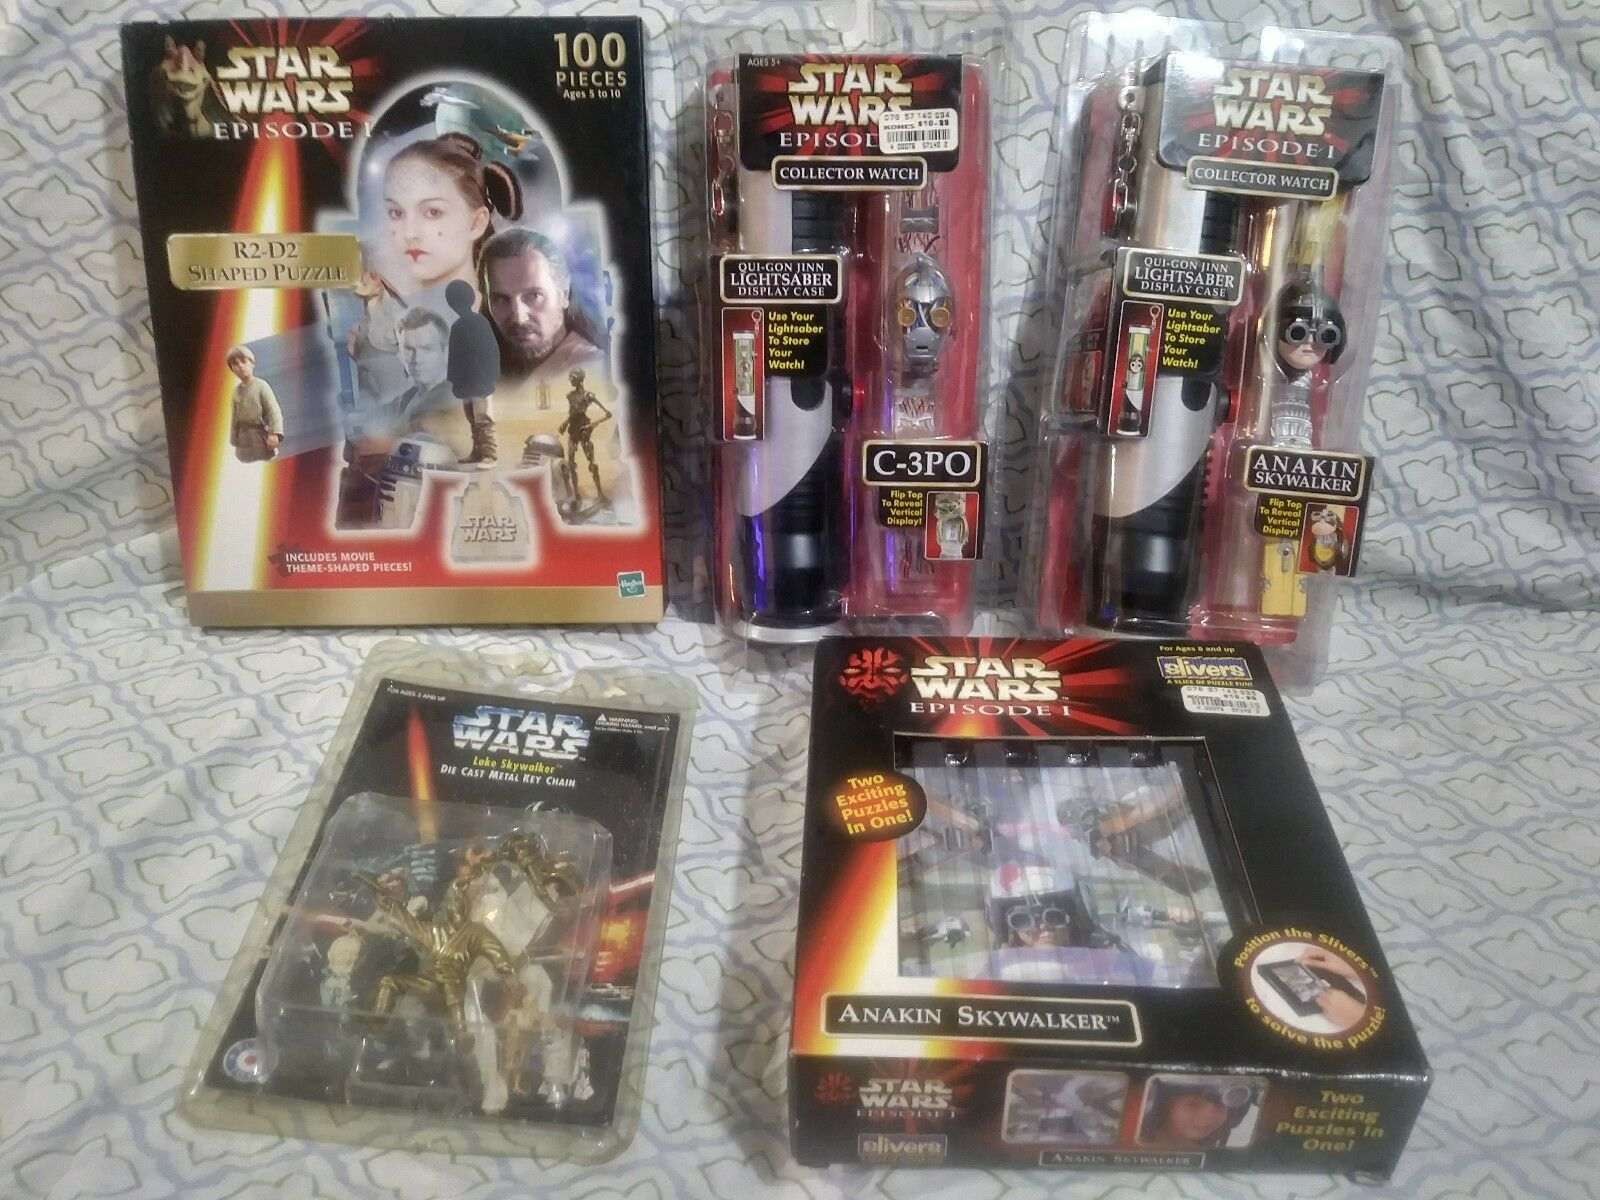 LOT STAR WARS EPISODE 1 & More COLLECTION WATCHES, Puzzles etc. NEW IN ORIGINAL